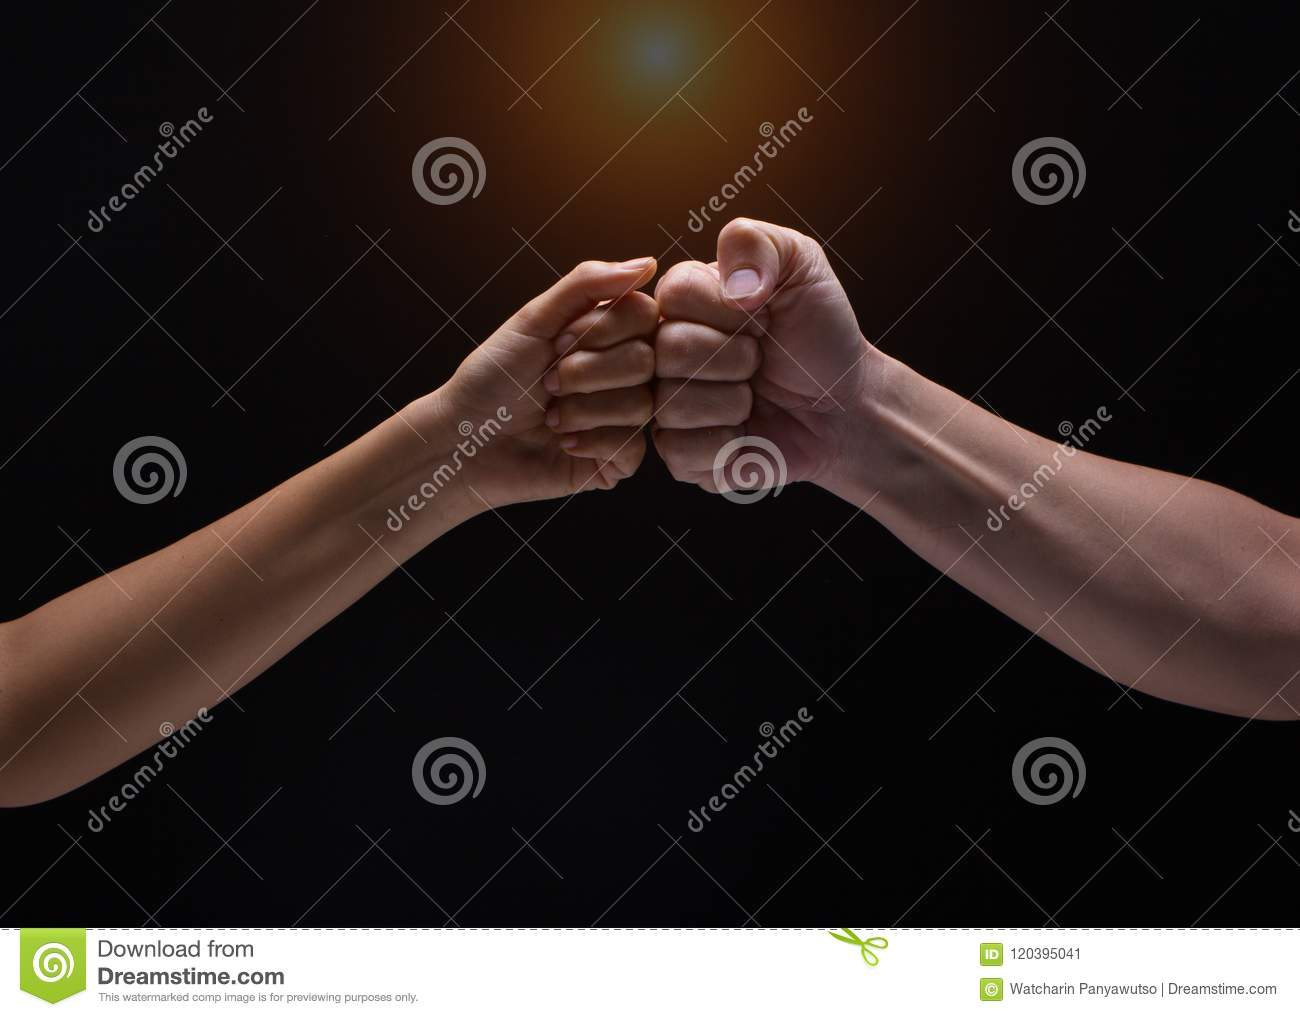 Close up of human hands making a fist bump on black background. a fist pump together after good deal